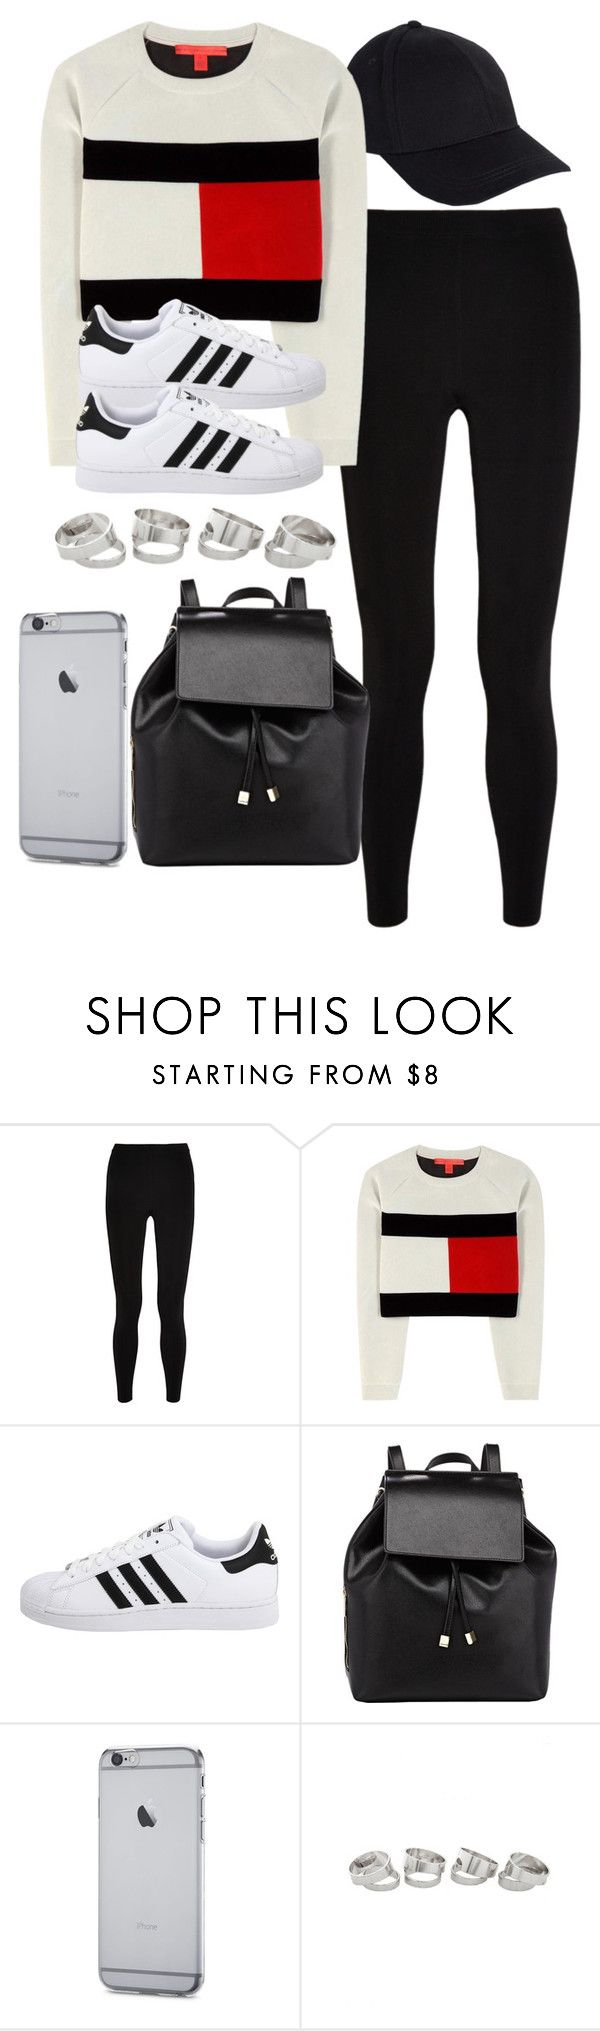 """""""Style #11454"""" by vany-alvarado ❤ liked on Polyvore featuring T By Alexander Wang, Tommy Hilfiger, adidas Originals and Barneys New York"""